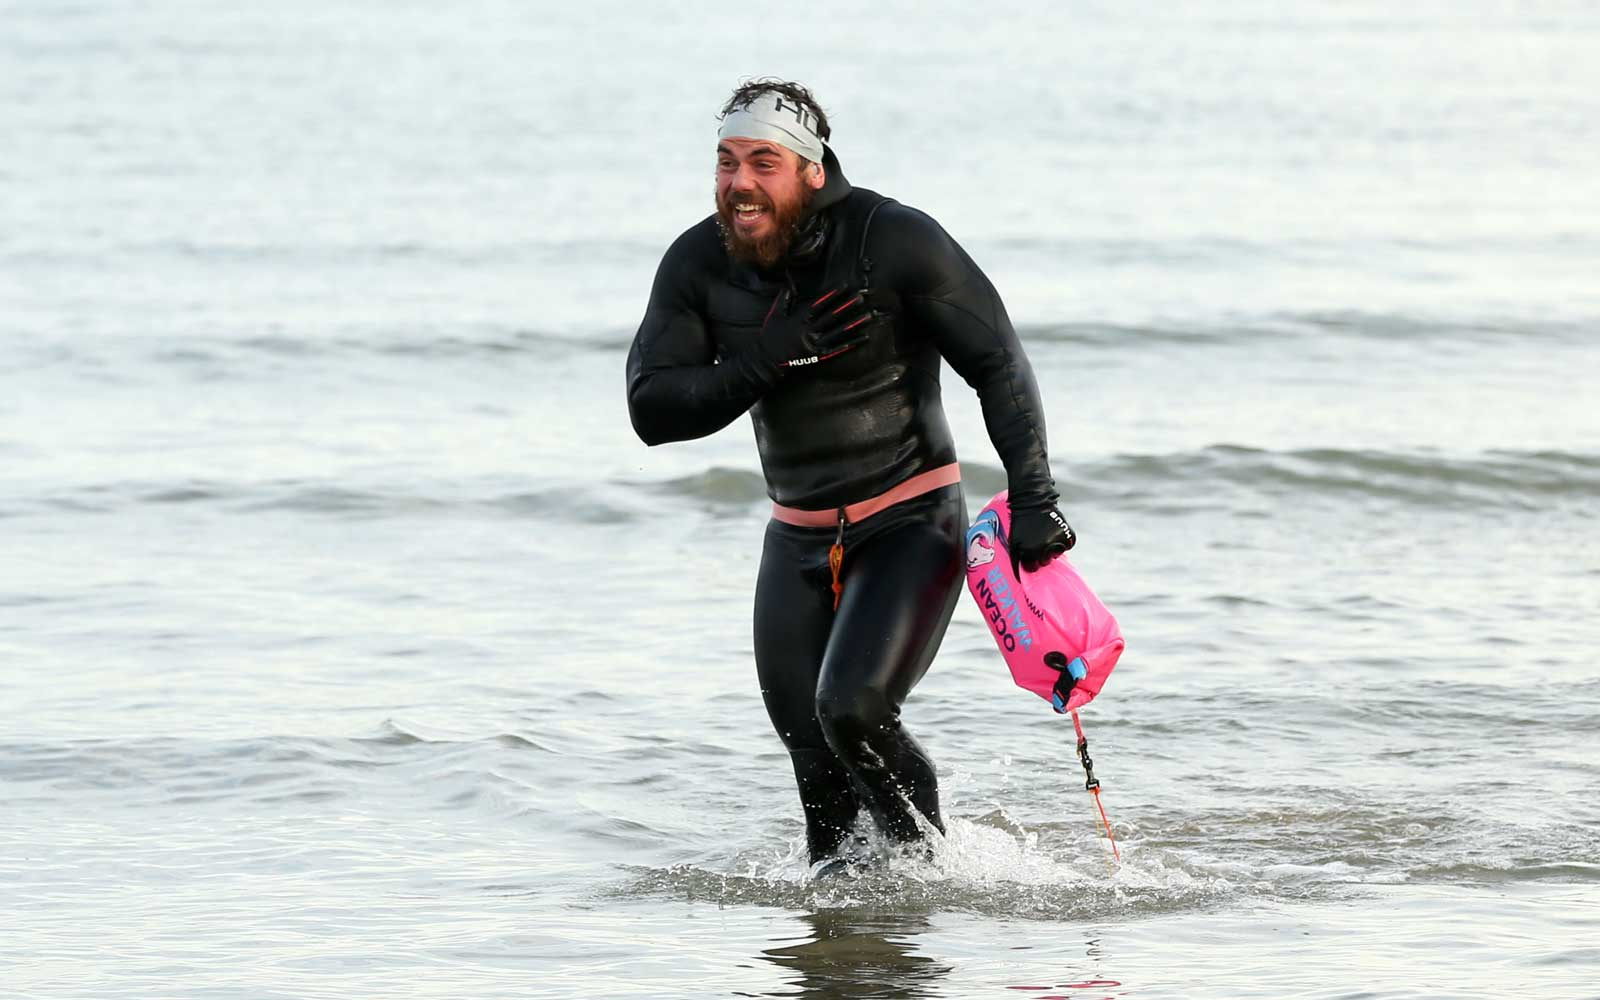 33-year-old Becomes First Man to Swim the Entire Coast of Great Britain